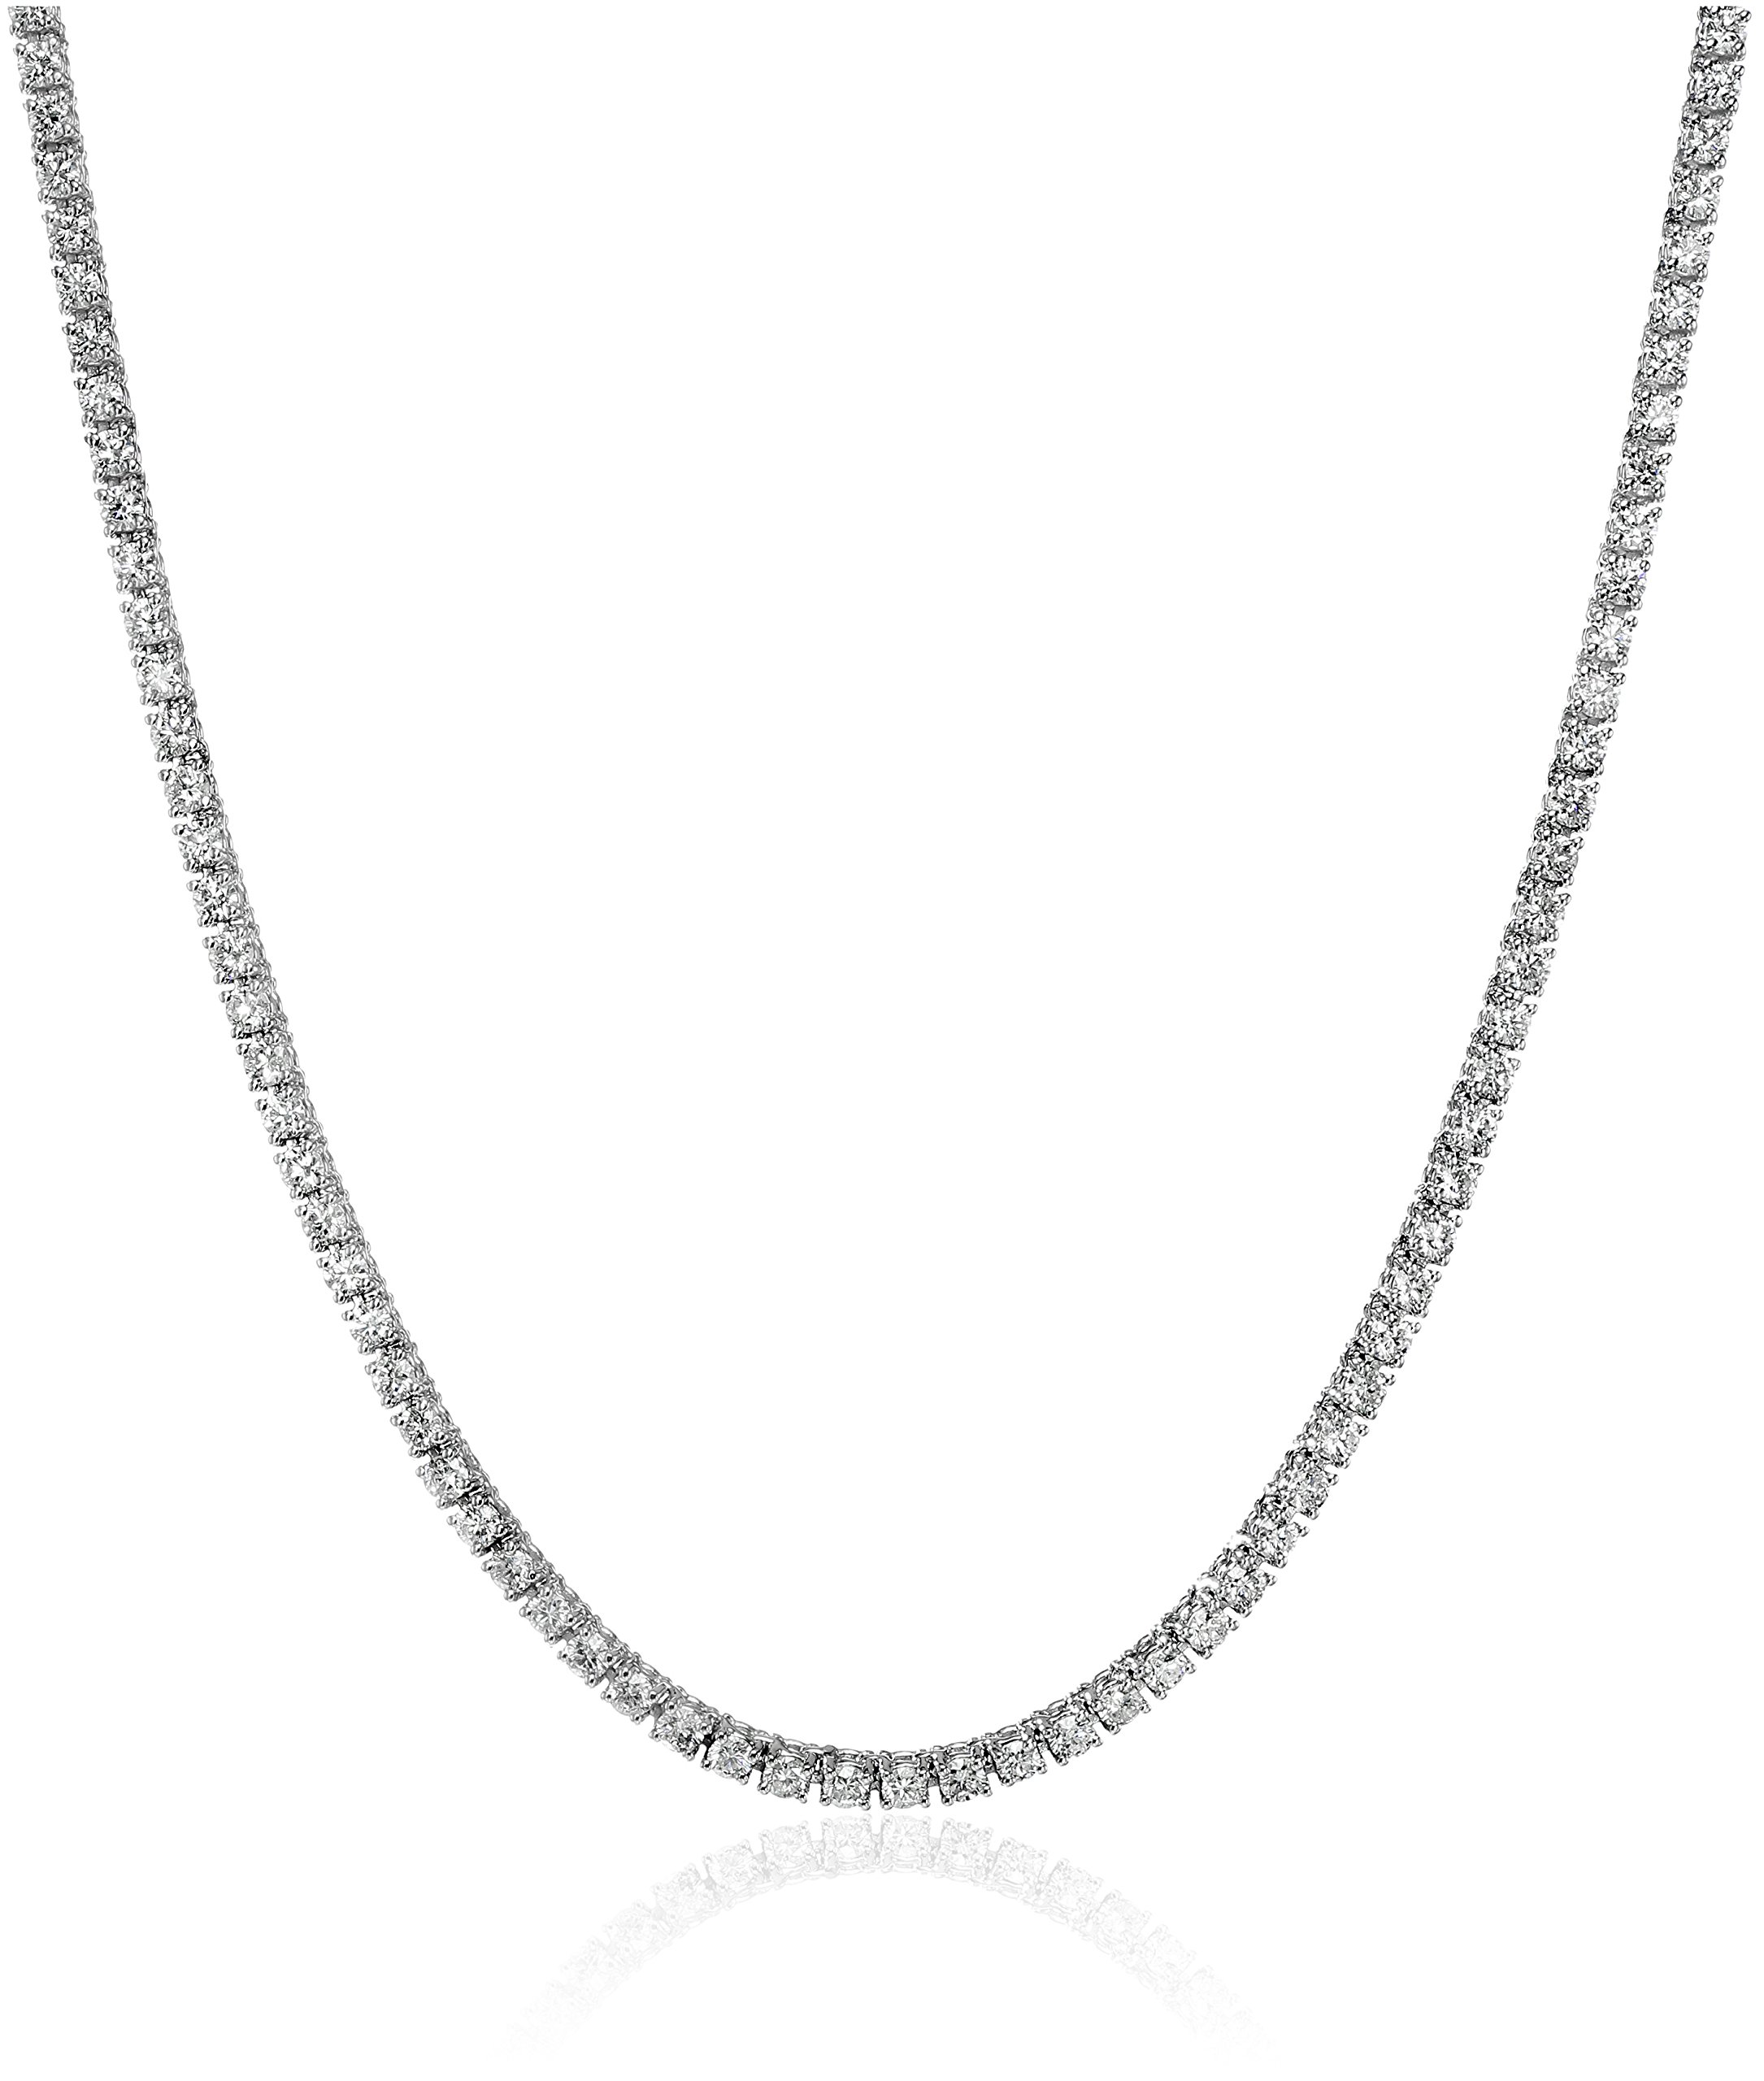 IGI Certified 14K White Gold Diamond Tennis Necklace (7.00 cttw, I-J Color, I1-I2 Clarity), 17''